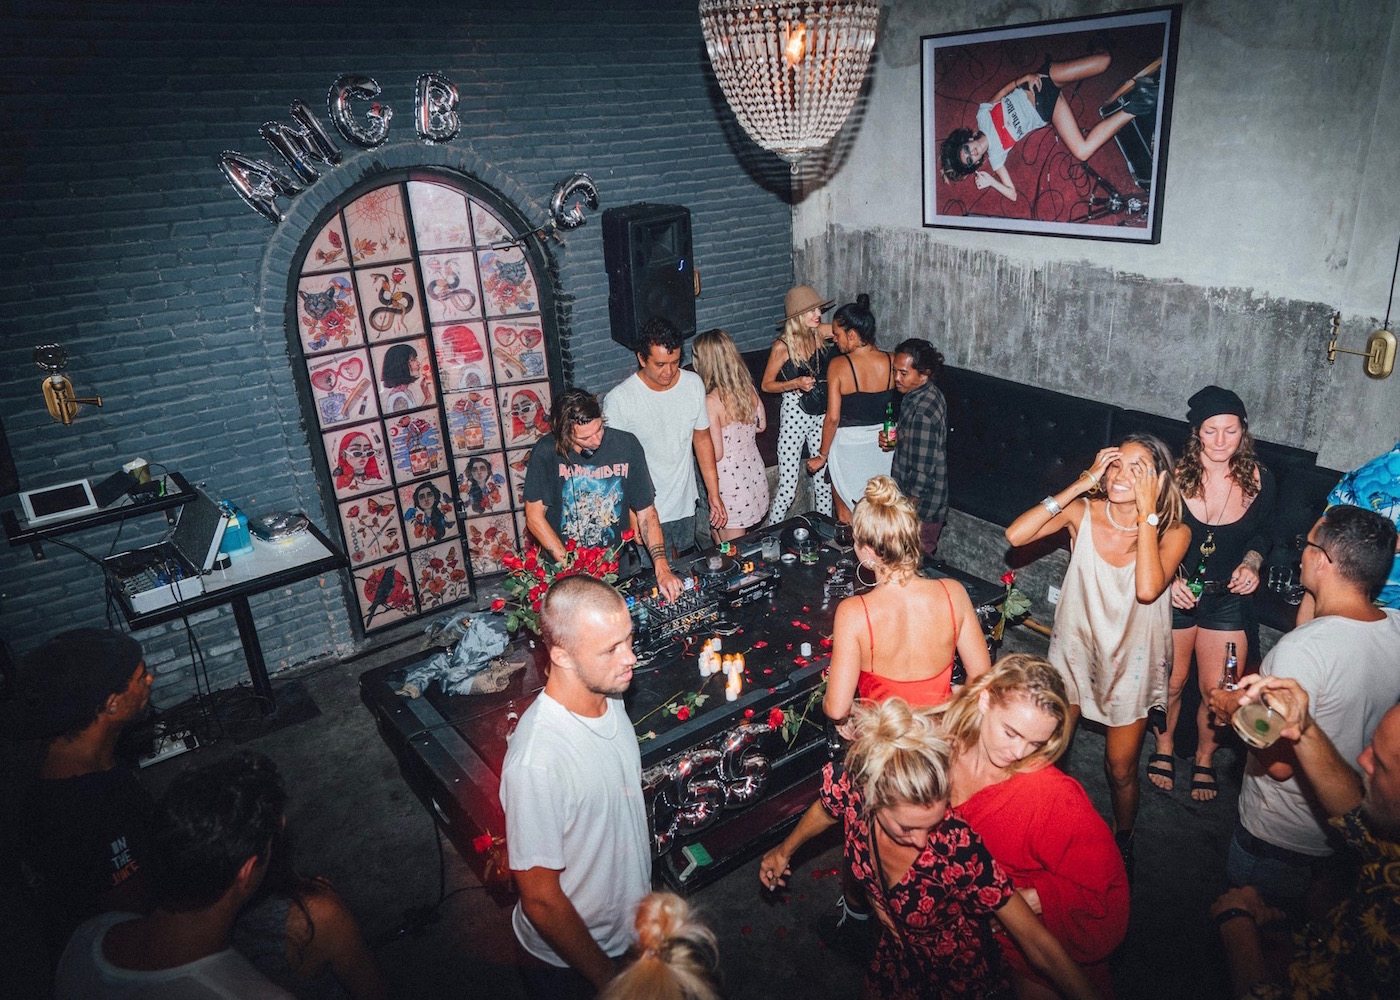 Party-goers at Black Cat Mini Mart - a hidden dive bar in Canggu, Bali, Indonesia